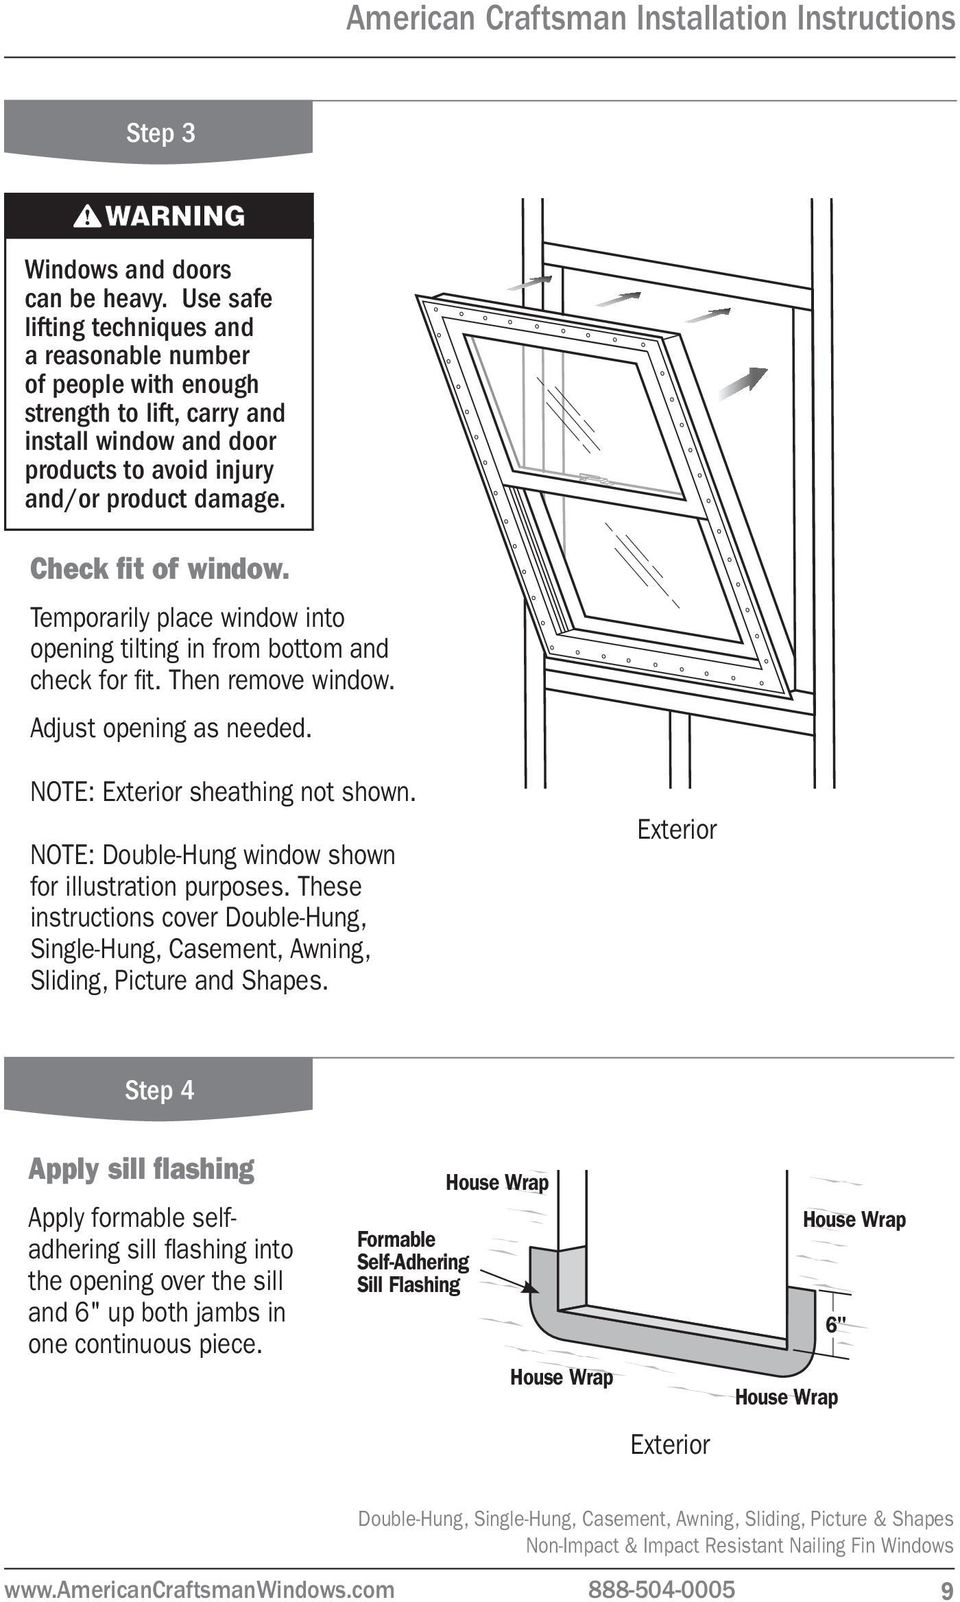 Check fit of window. Temporarily place window into opening tilting in from bottom and check for fit. Then remove window. Adjust opening as needed. NOTE: Exterior sheathing not shown.